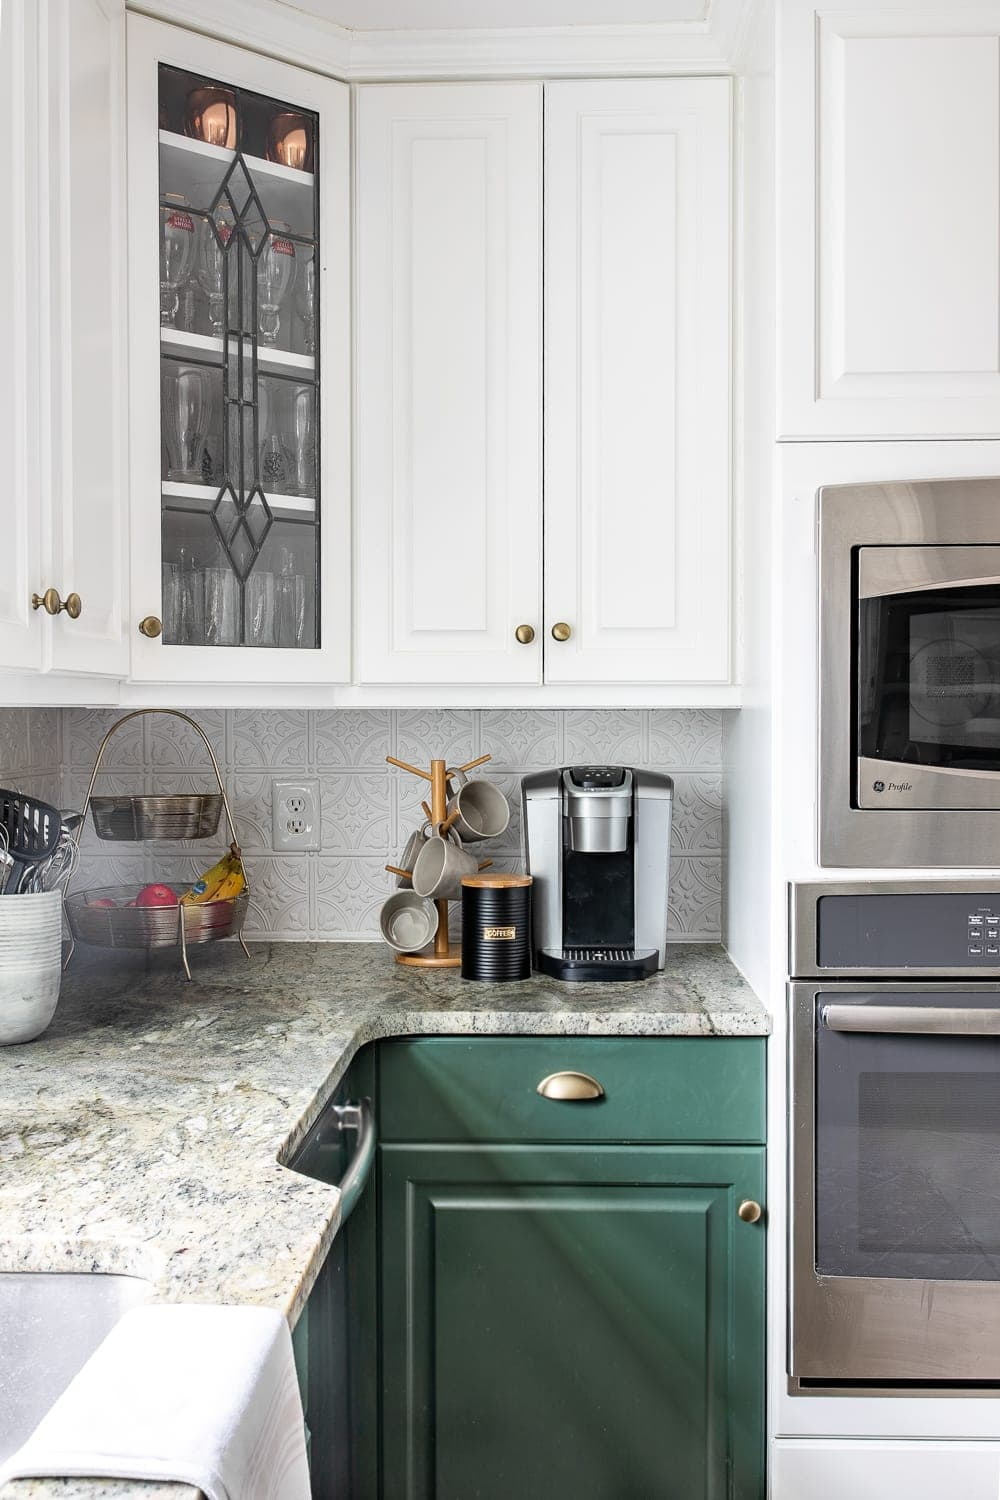 Simplified Decorating: How to Decorate Kitchen Countertops ... on Kitchen Countertop Decor  id=12021